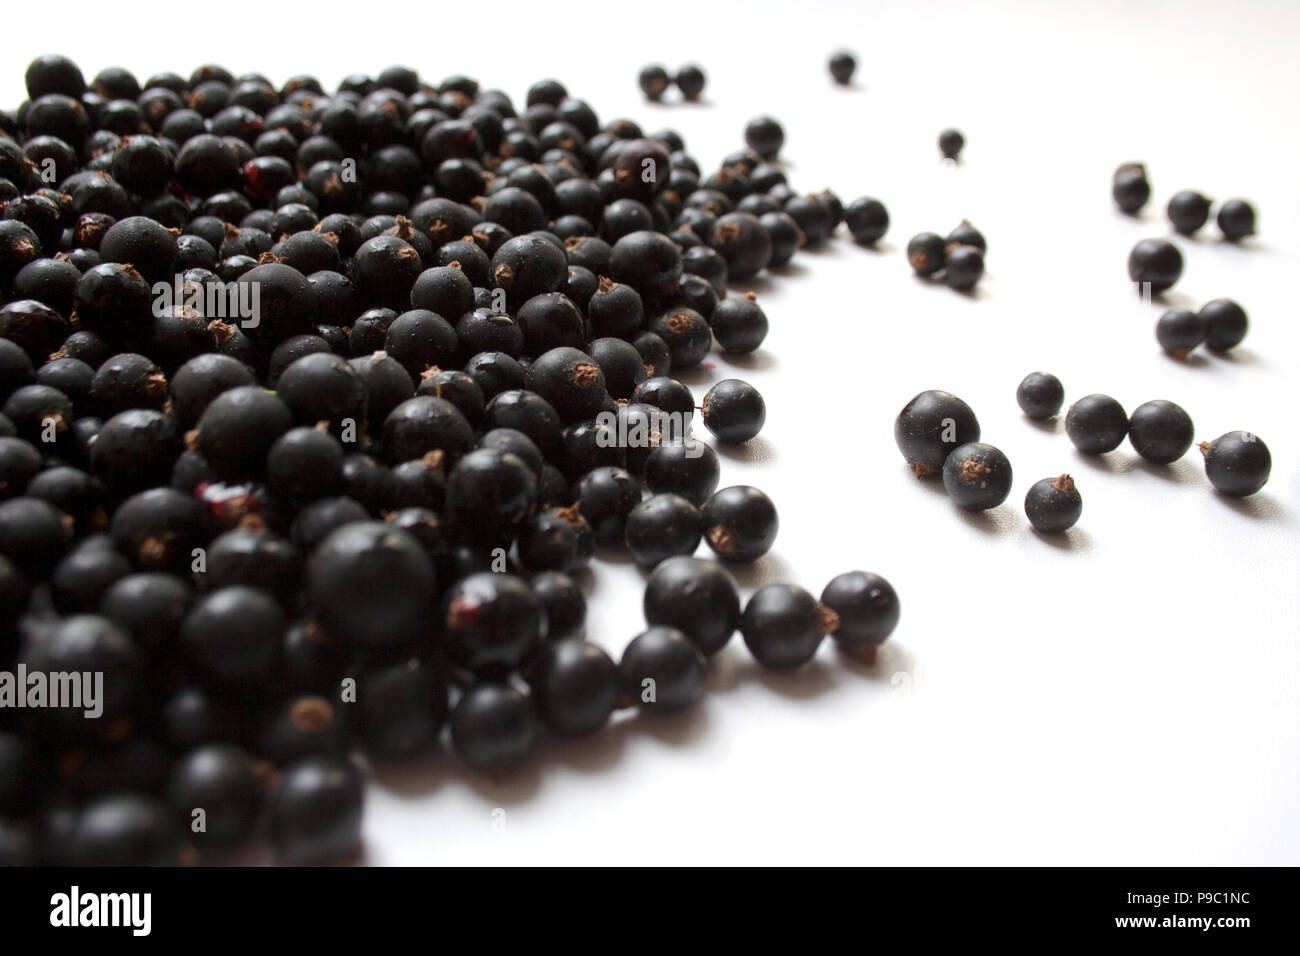 Heap of black currant berries isolated on white background close up Stock Photo